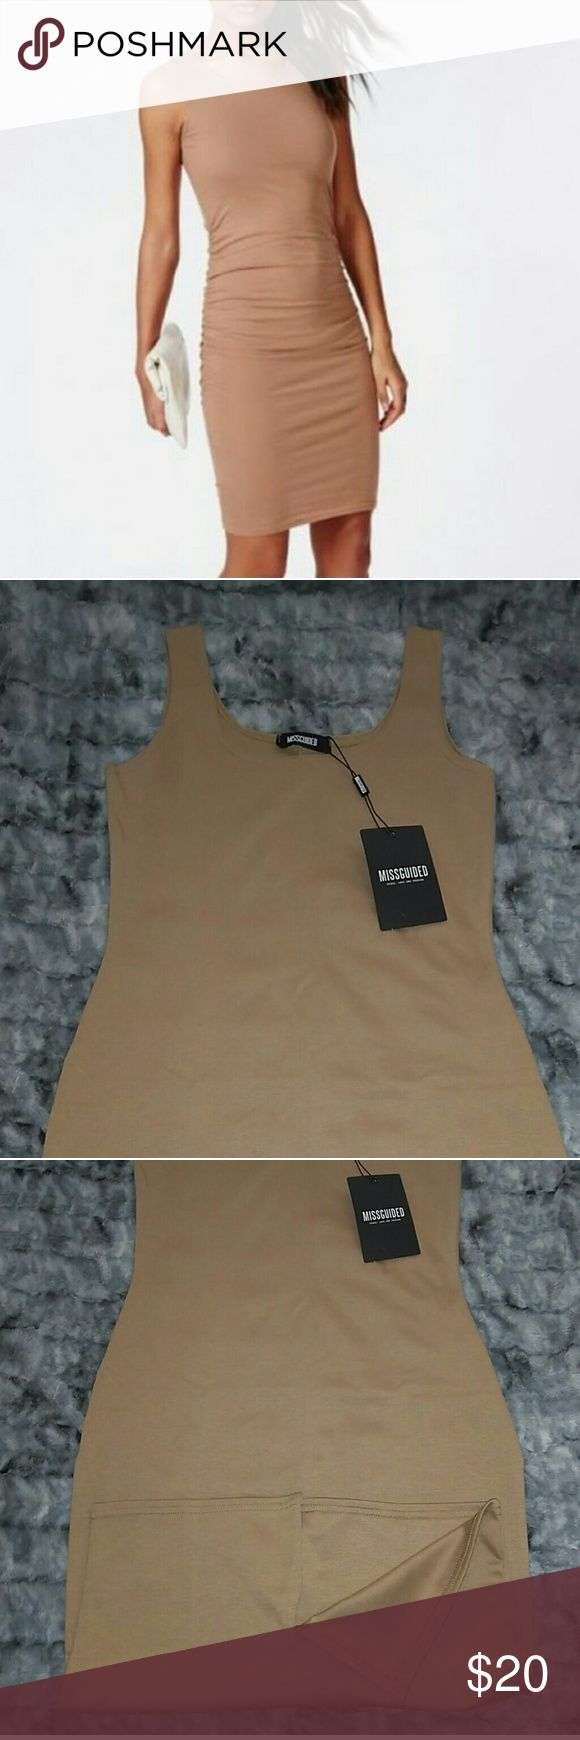 NWT Missguided Camel Bodycon Tank Midi Dress A sexy summer bodycon dress from Missguided that could easily be dressed up with a cream blazer and black pumps for the office or dressed down with statement jewelry for a night out! Thick stretchy jersey material and a scoop neck make this the perfect midi length dress for any occasion. Missguided Dresses Strapless